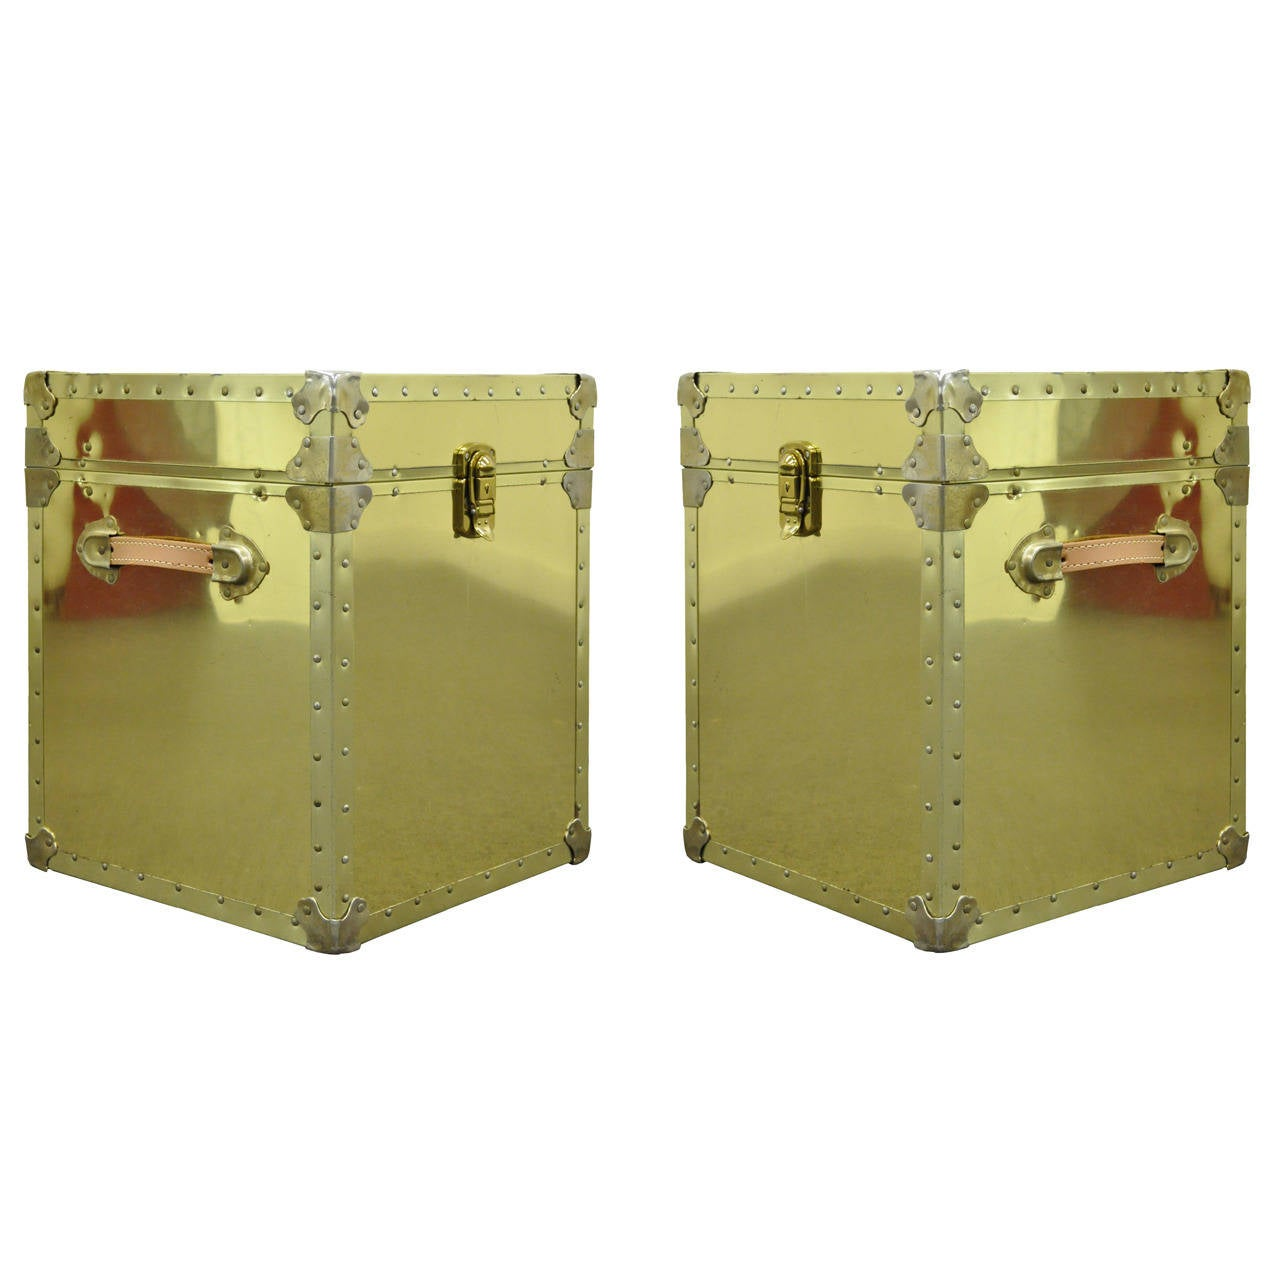 Pair of Hollywood Regency Brass Clad Trunks or Side Tables, USA, 1970s